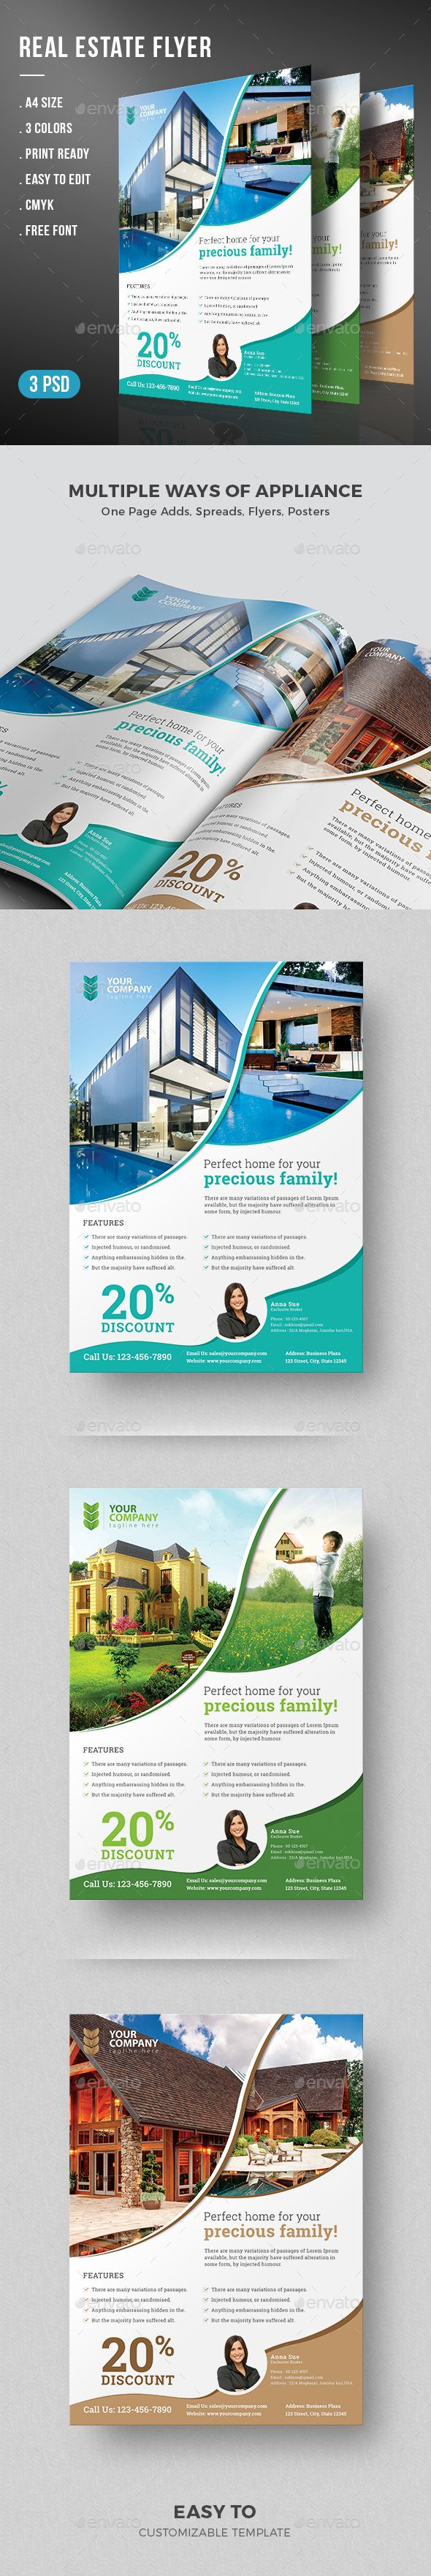 real estate flyer ad design marketing and promotion this real estate flyer is suitable for realstate business promotion advertising homes property